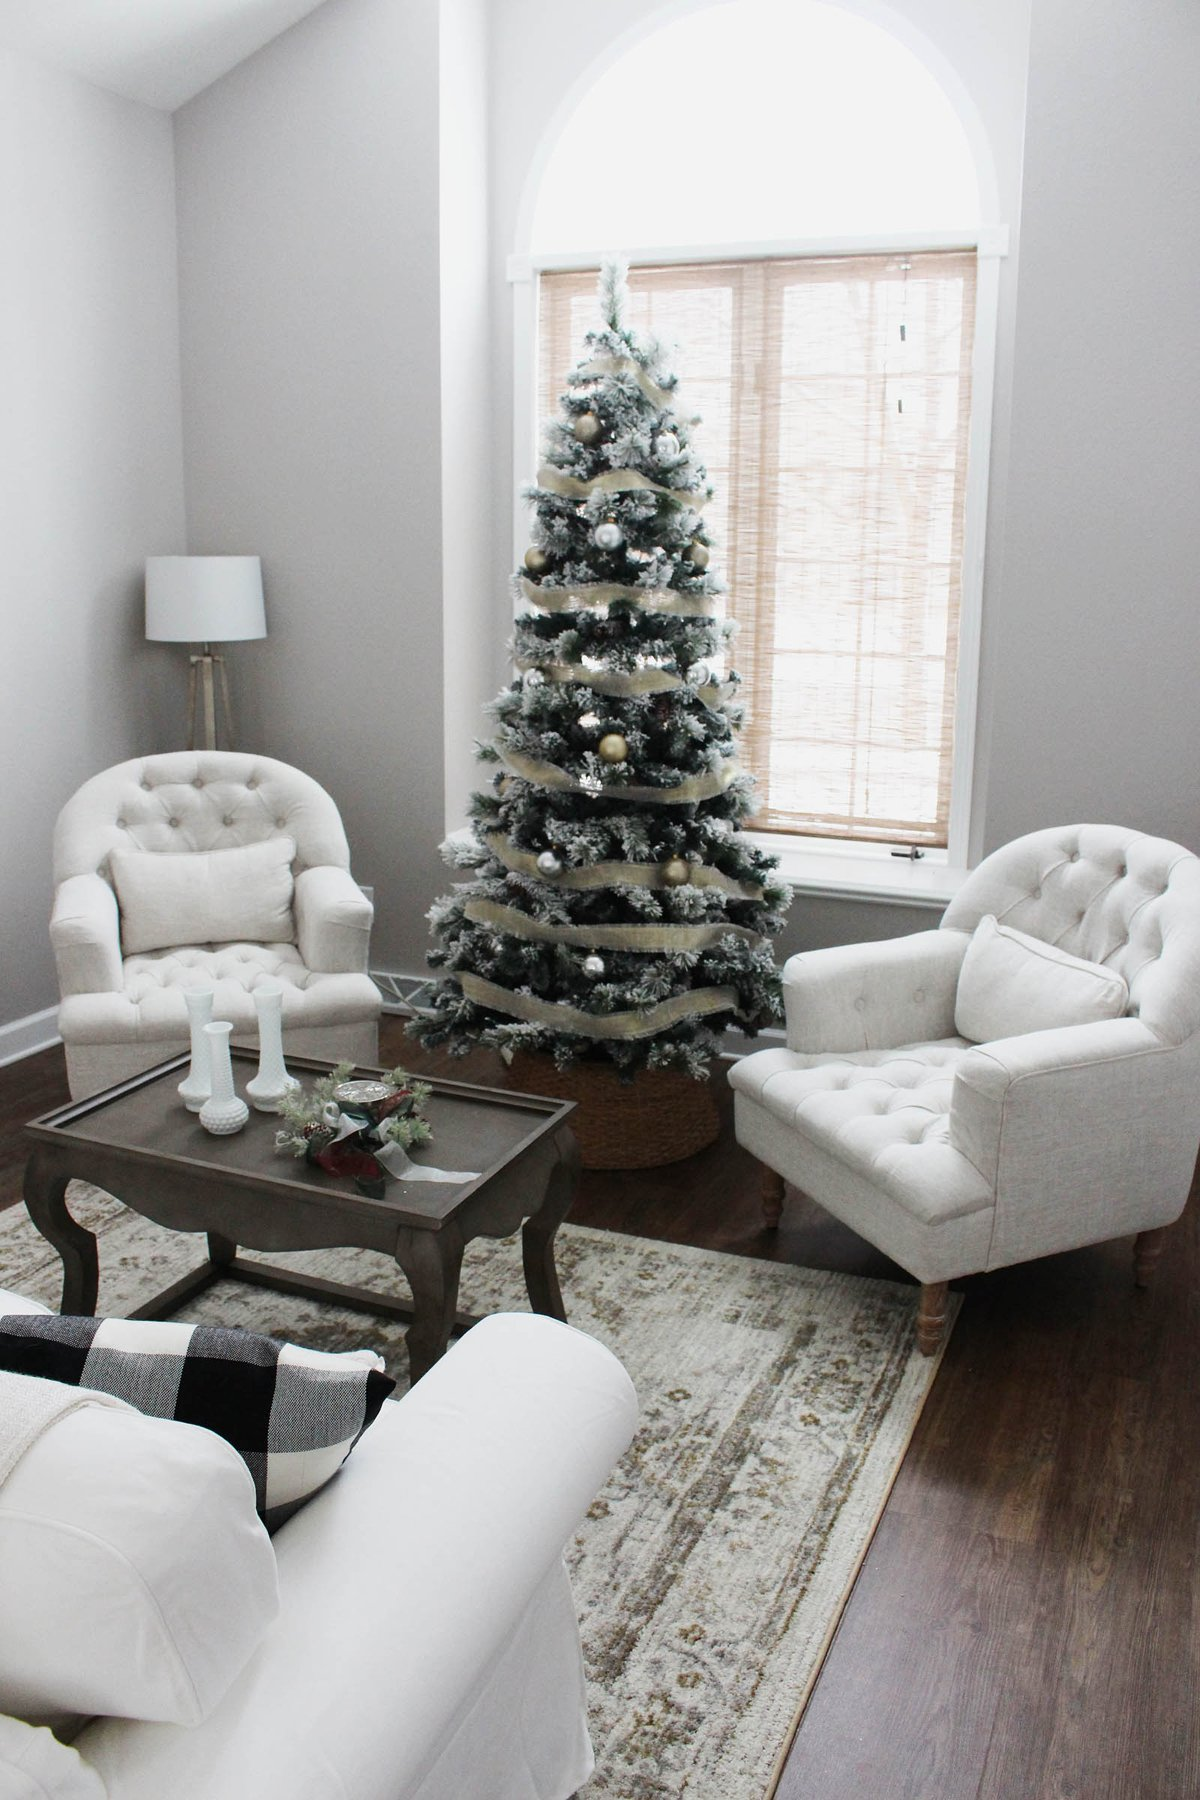 A Neutral Christmas Sitting Room